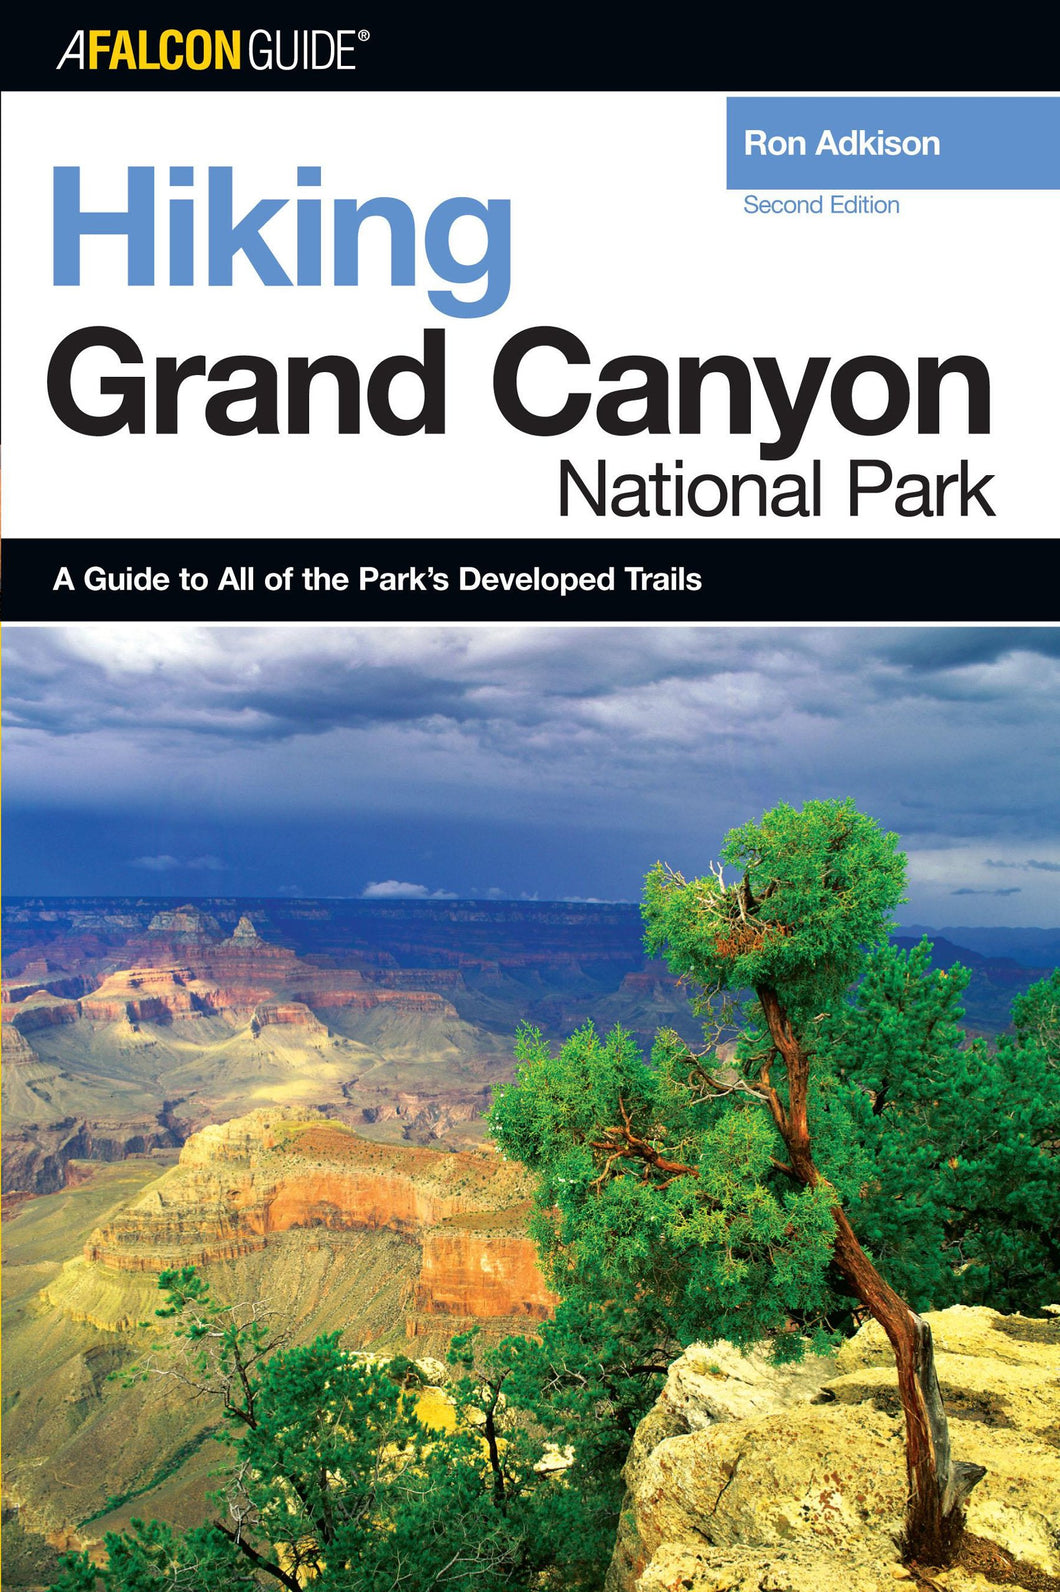 Hiking Grand Canyon National Park: A Guide to All of the Park's Developed Trails